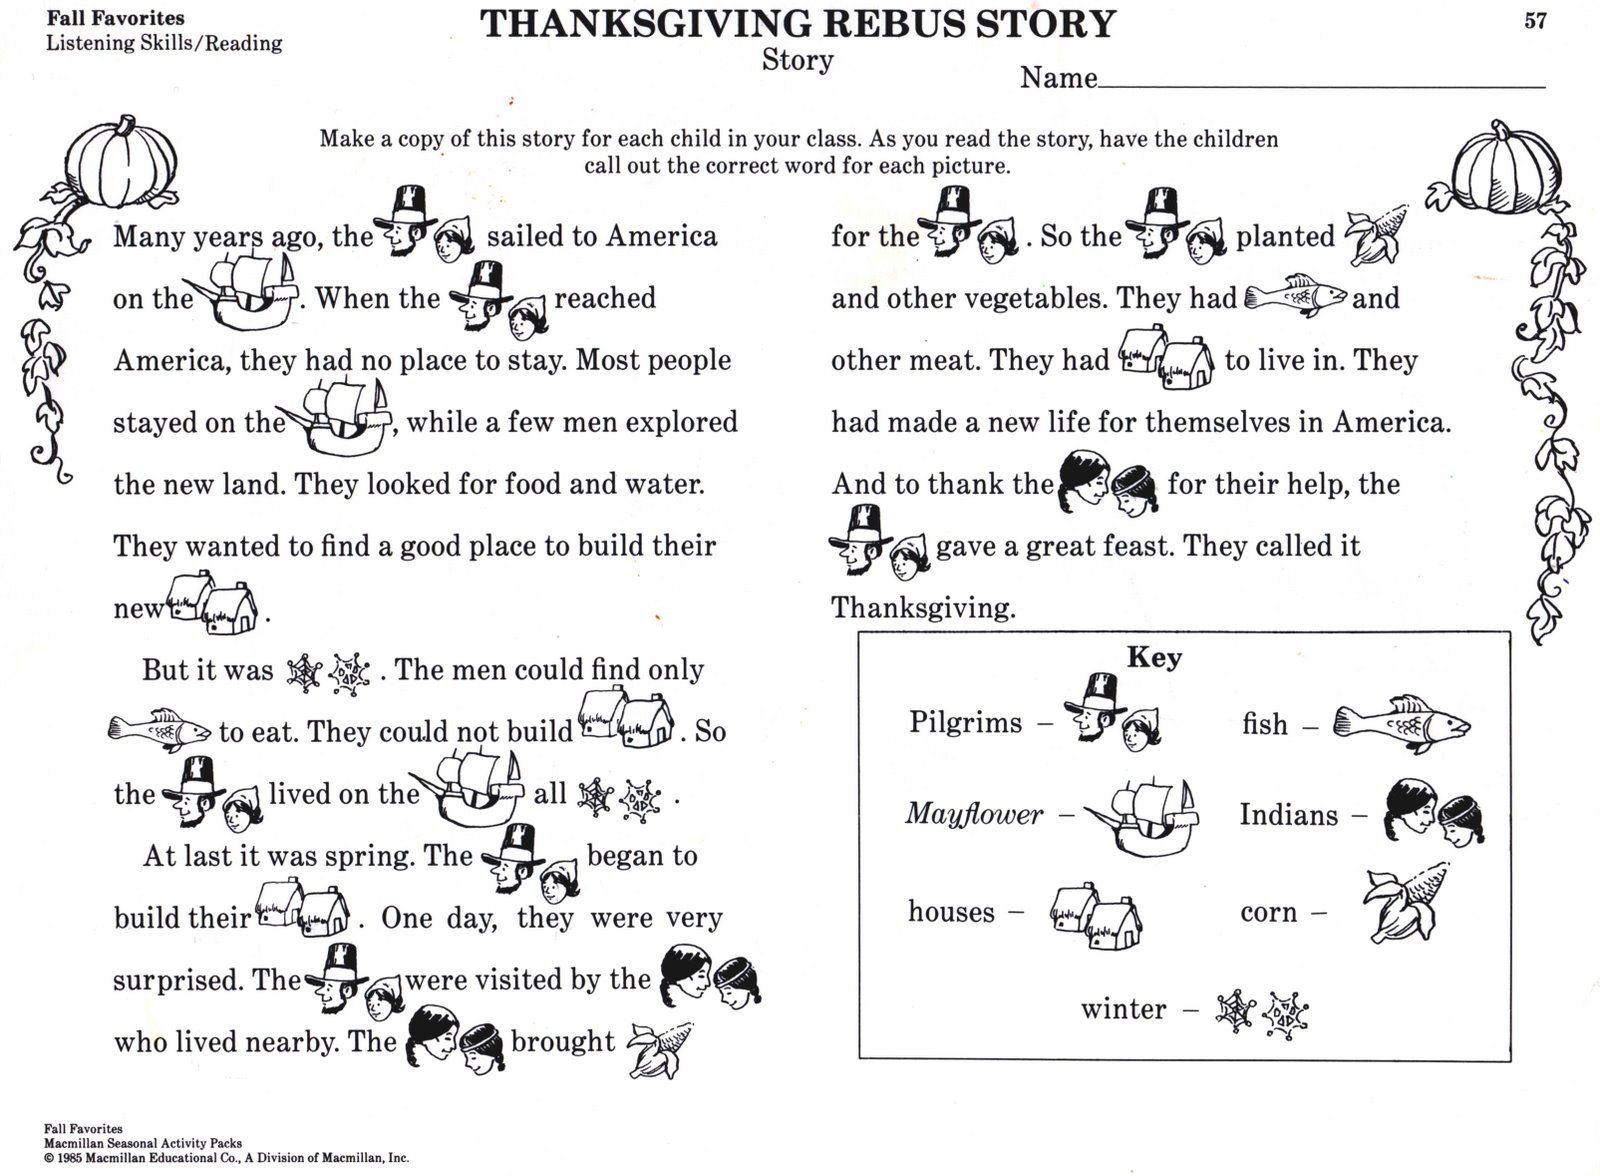 Free Story Of Thanksgiving For Kids